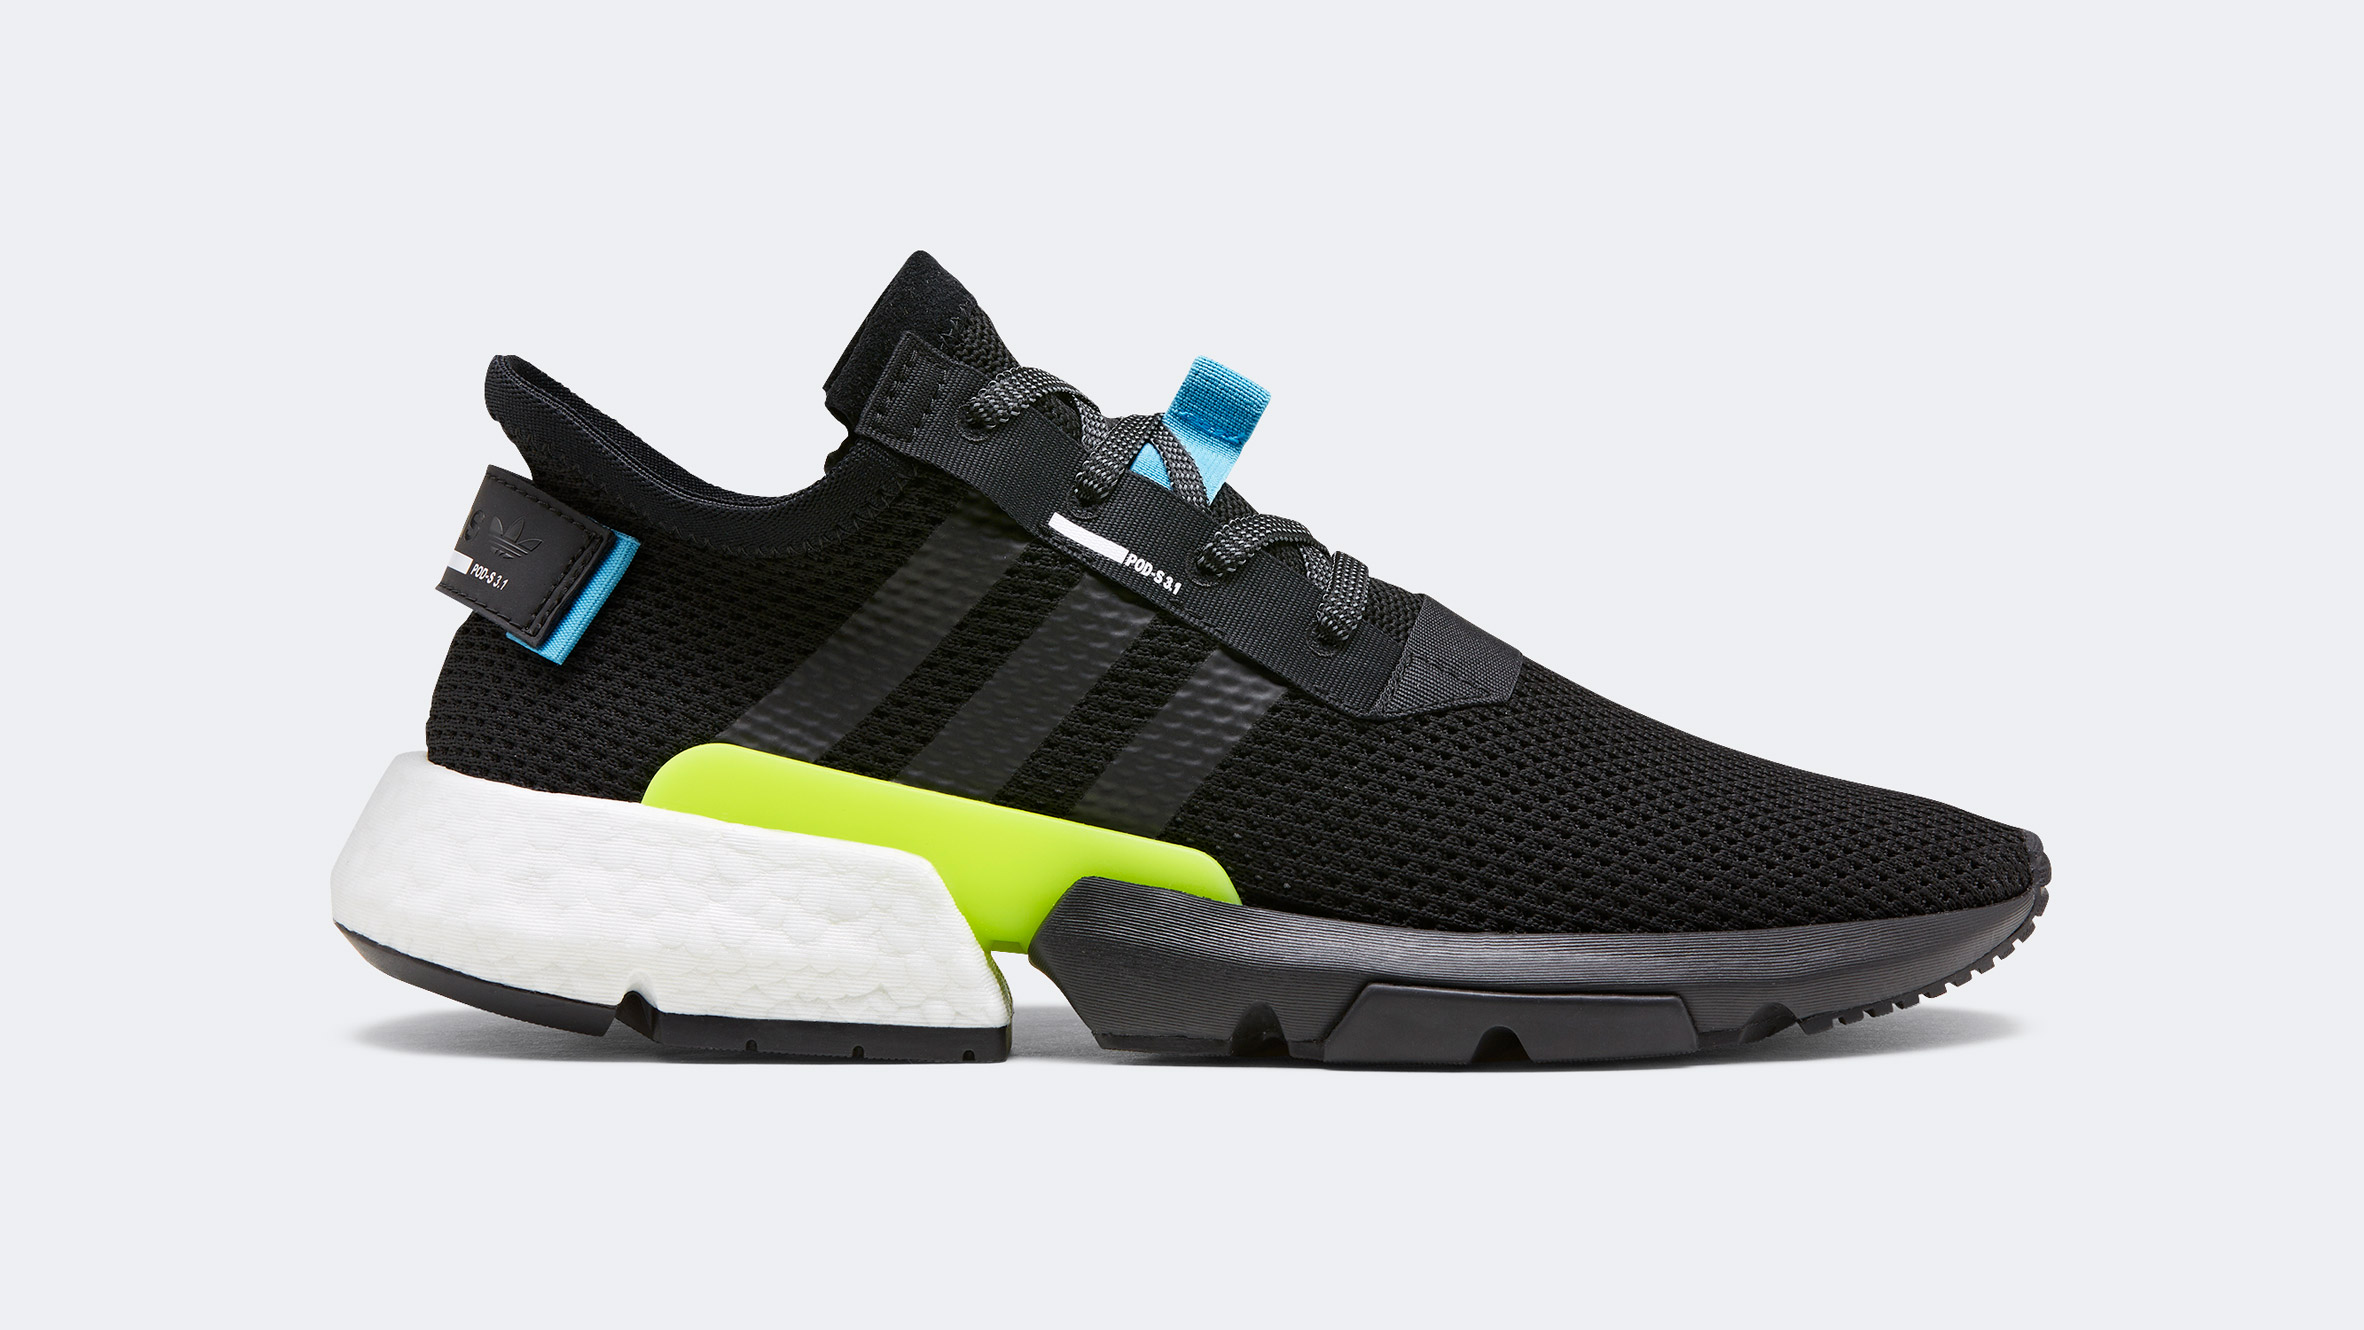 P.O.D.System shoe by adidas embraces a design from the 1990s